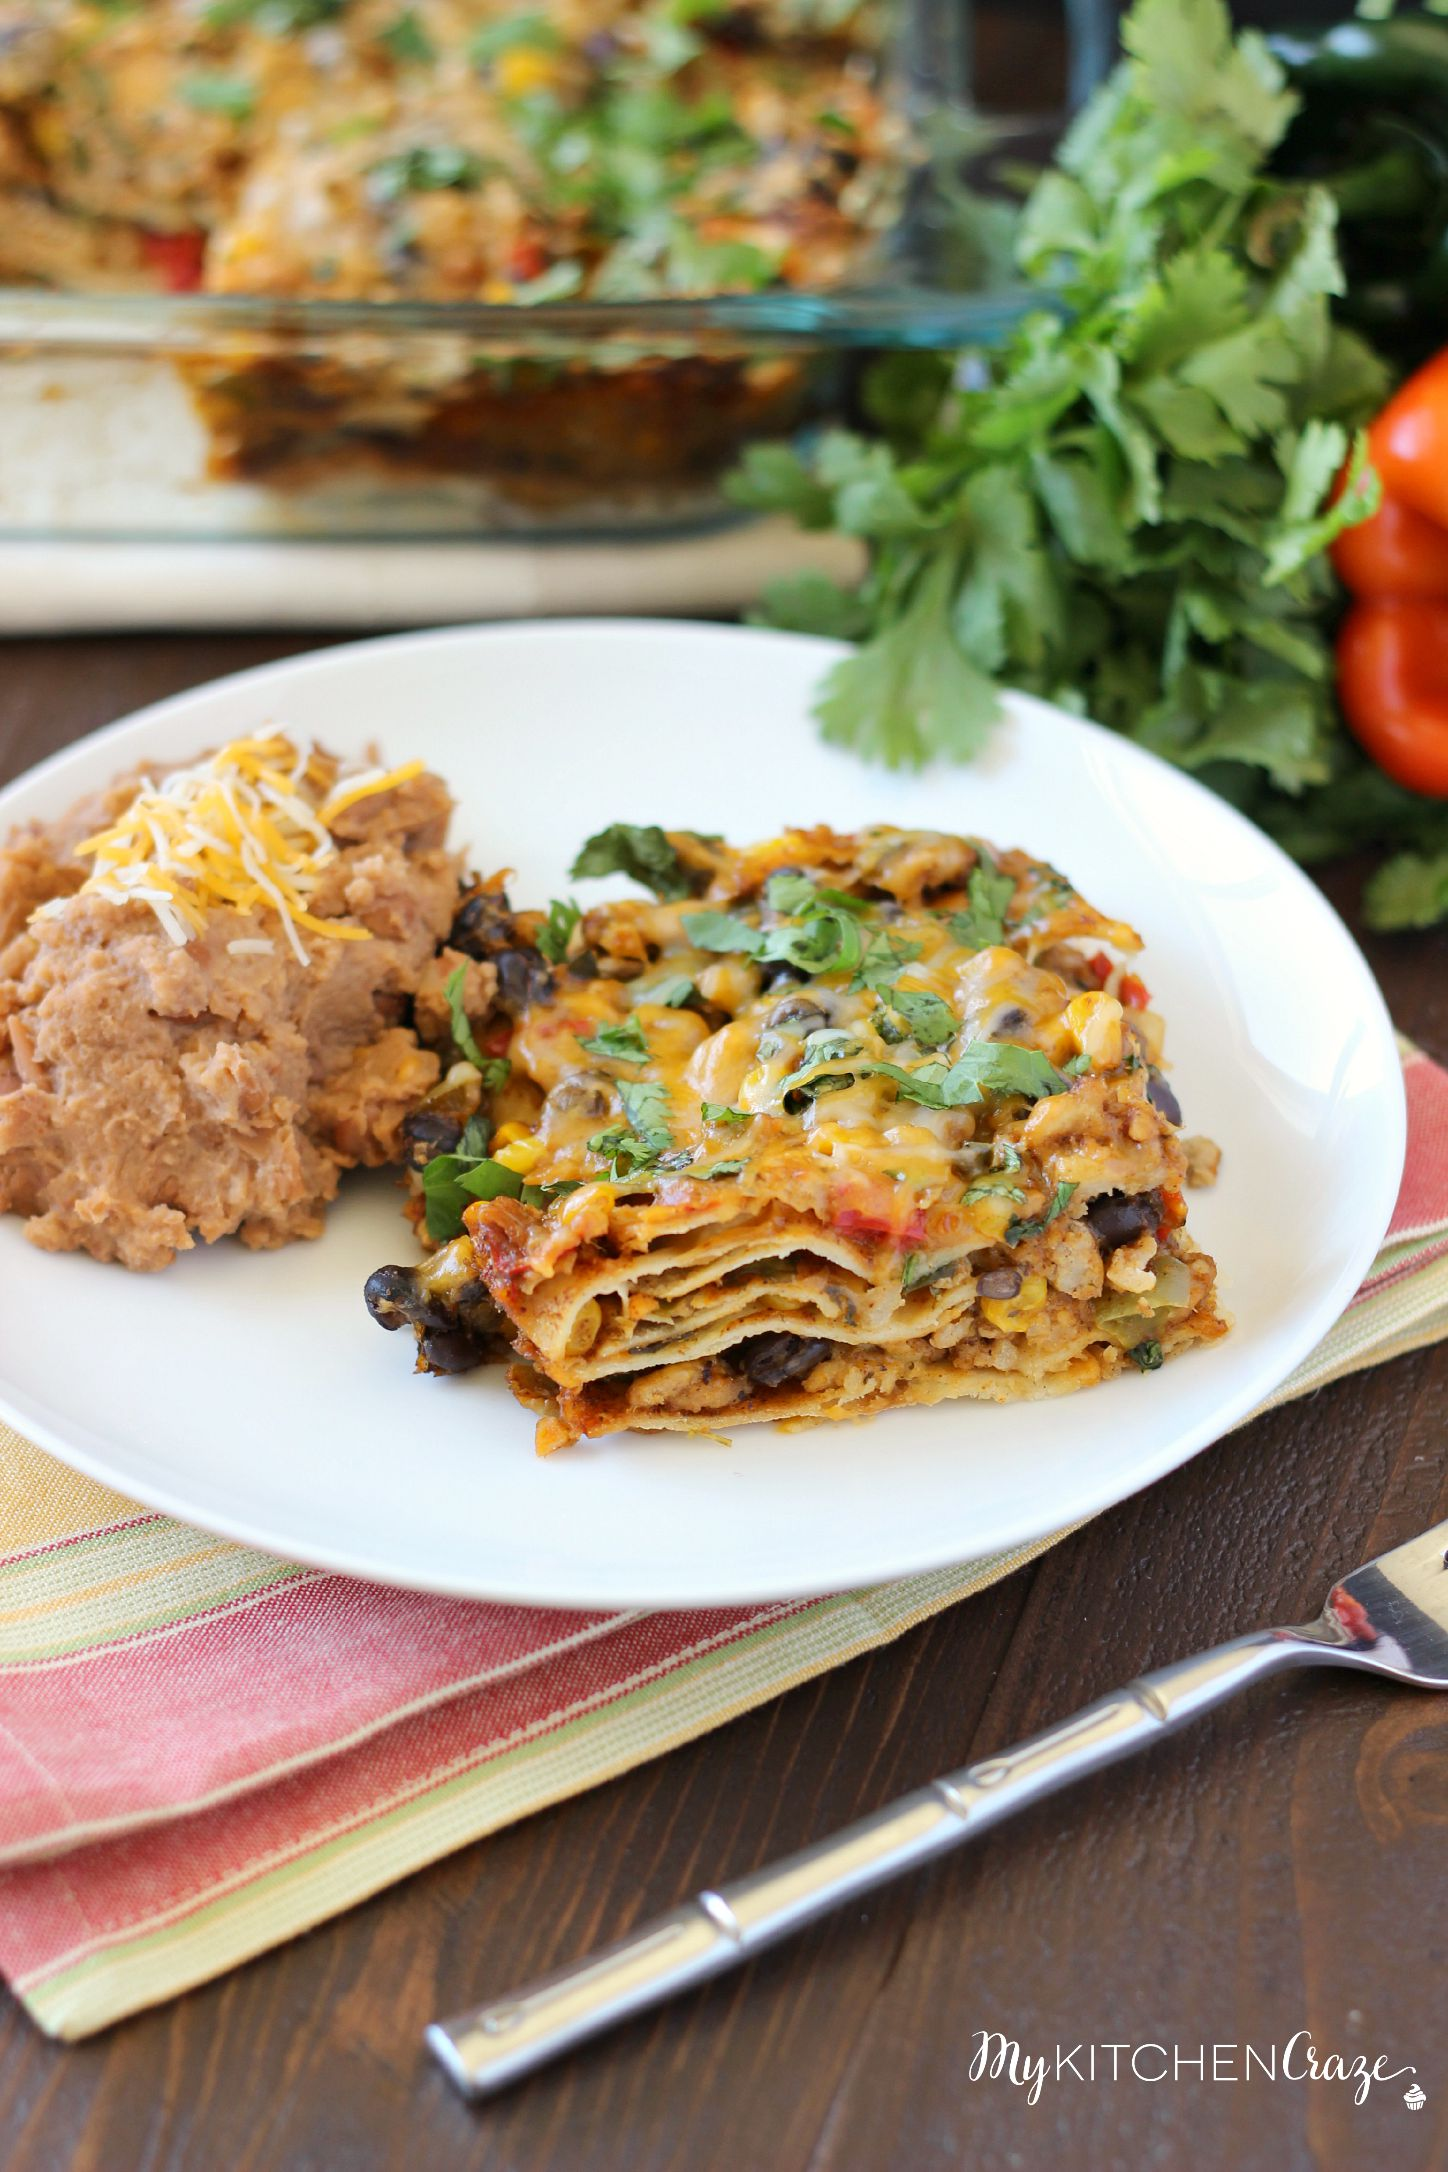 Tex-Mex Enchilada Casserole ~ mykitchencraze.com ~ This casserole is filled with corn, black beans, peppers and a delicious homemade enchilada sauce! Delicious!!